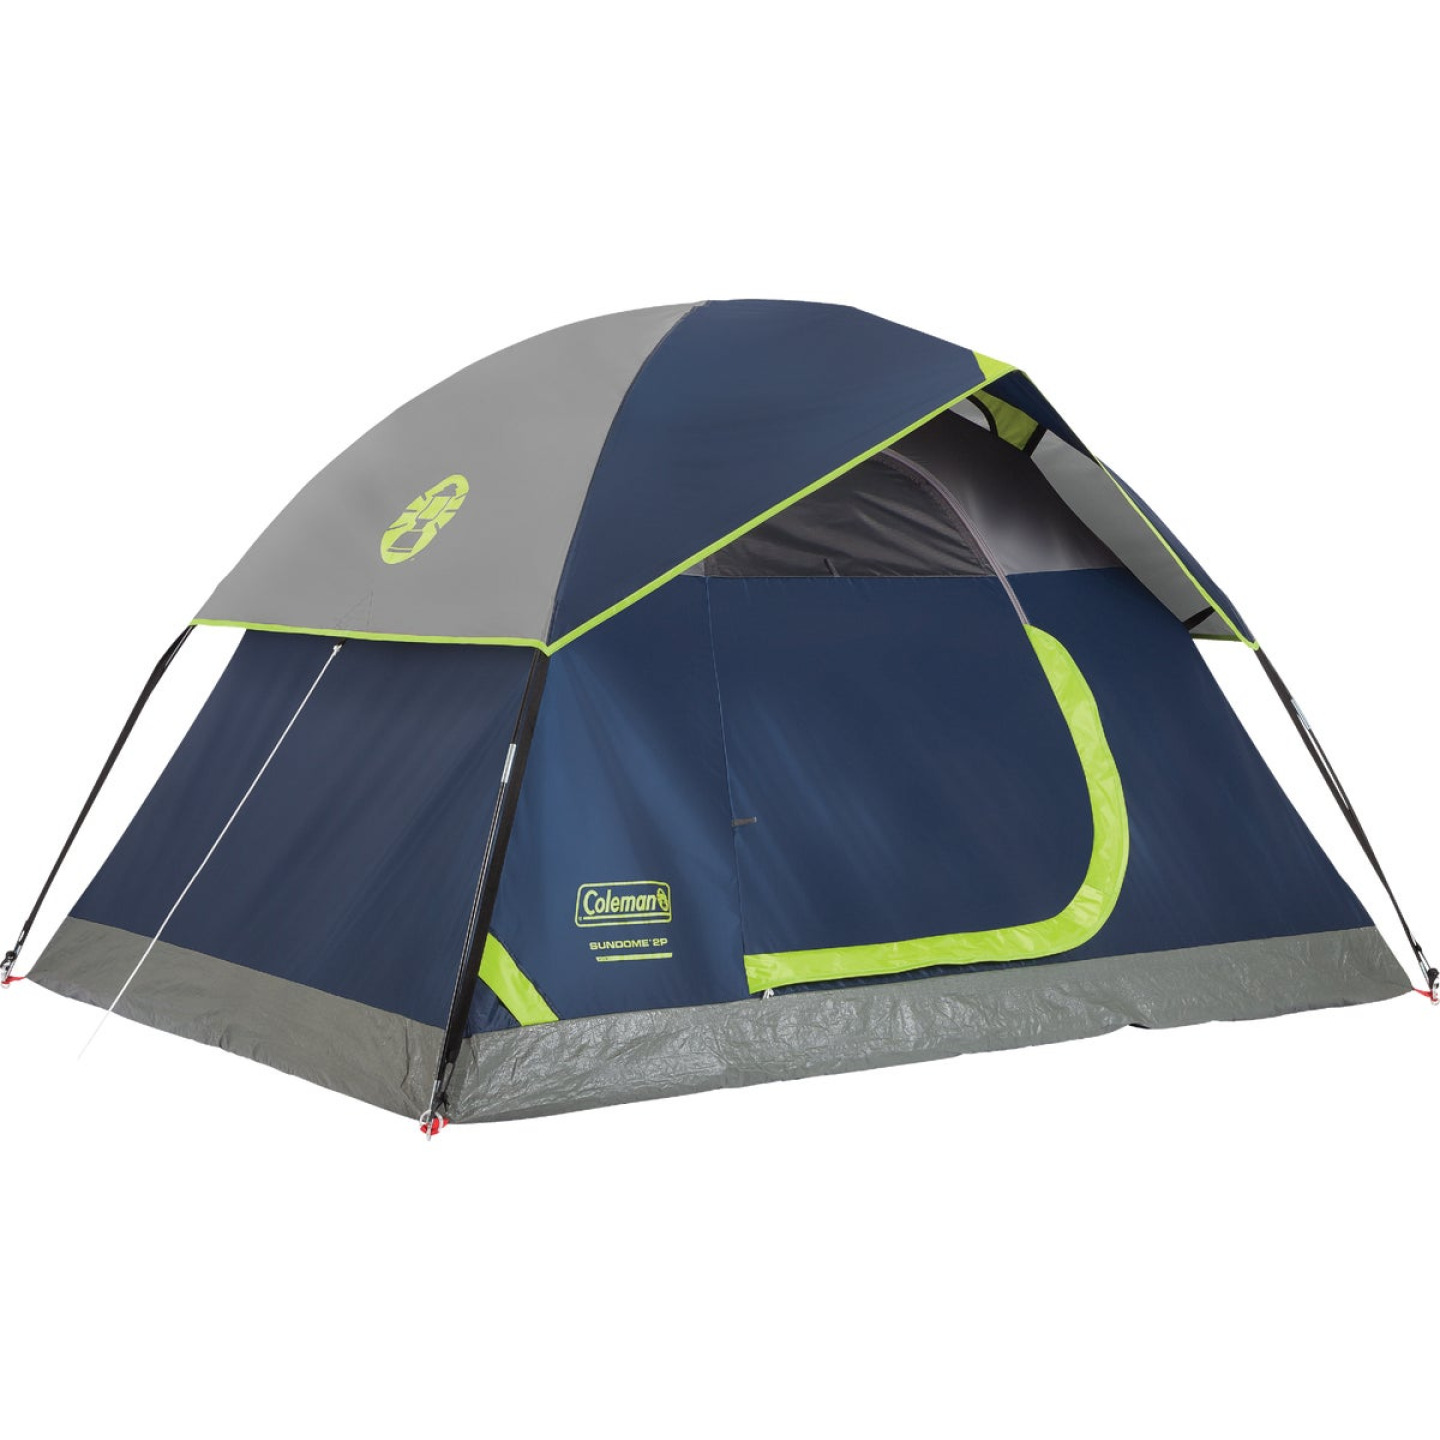 Coleman 2-Person 5 Ft. W. x 7 Ft. L. Dome Tent Image 1